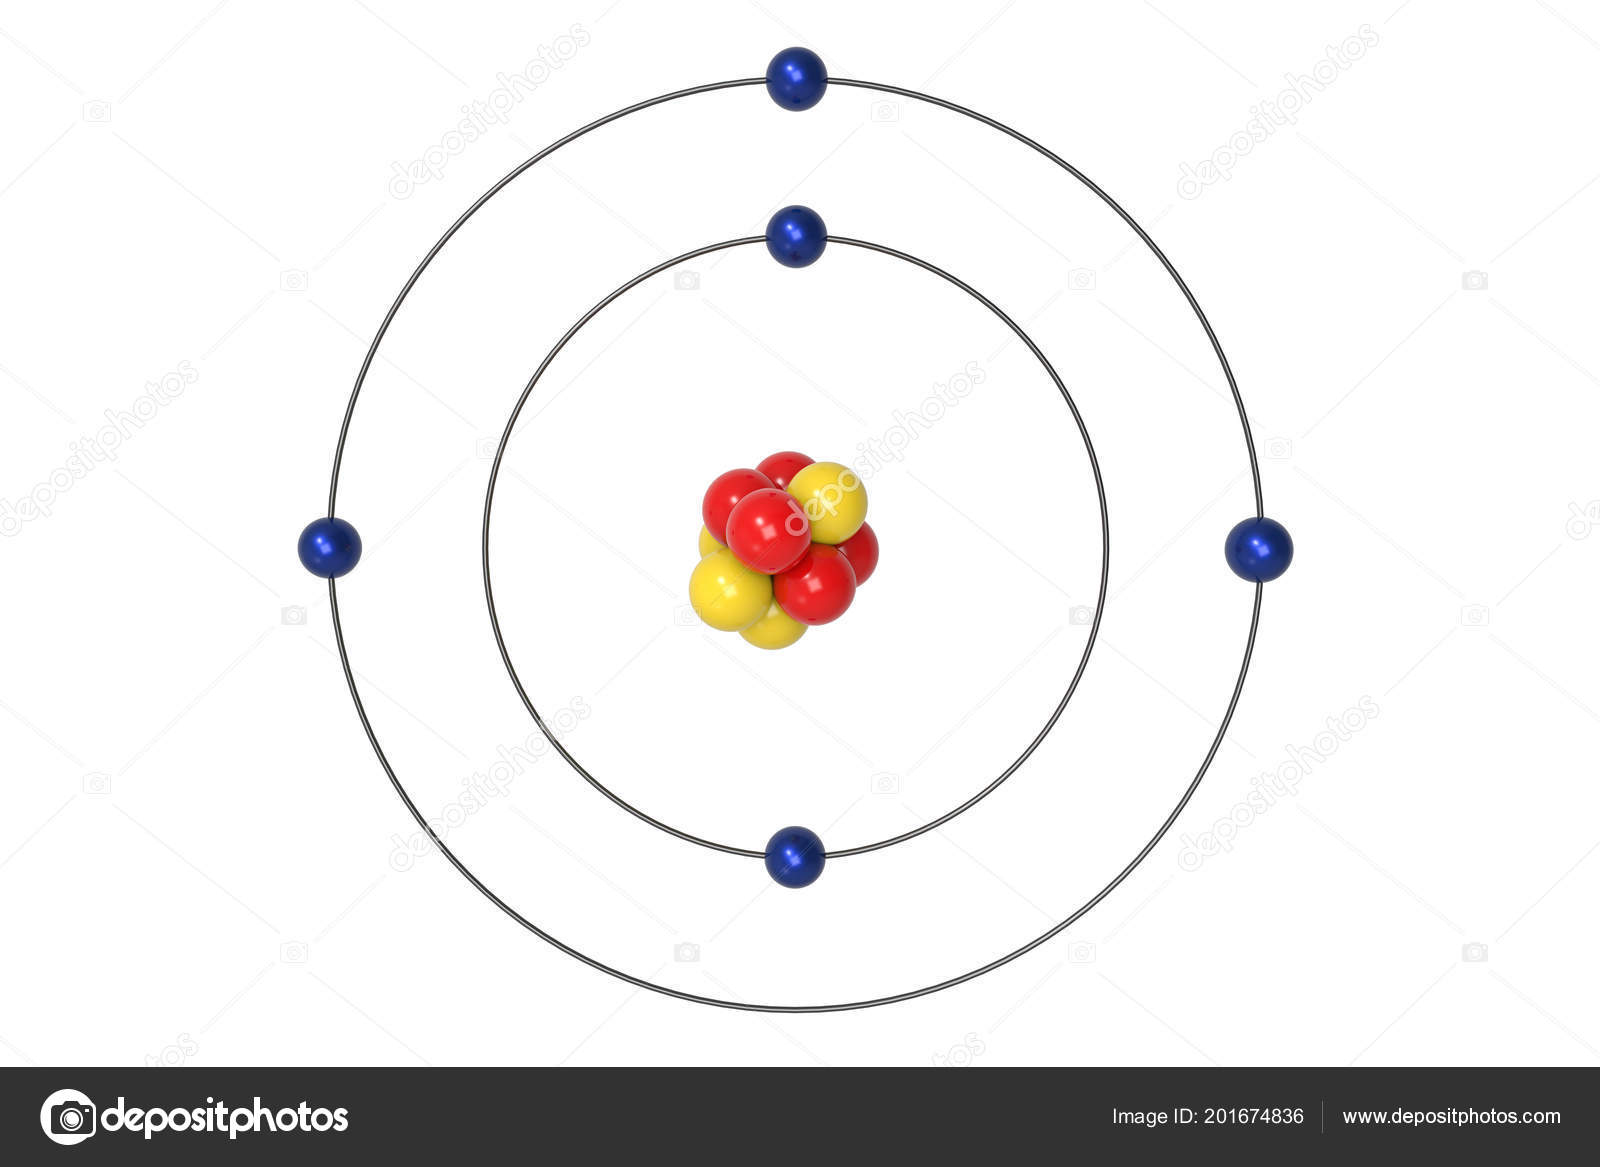 In Neon Atom Bohr Diagram